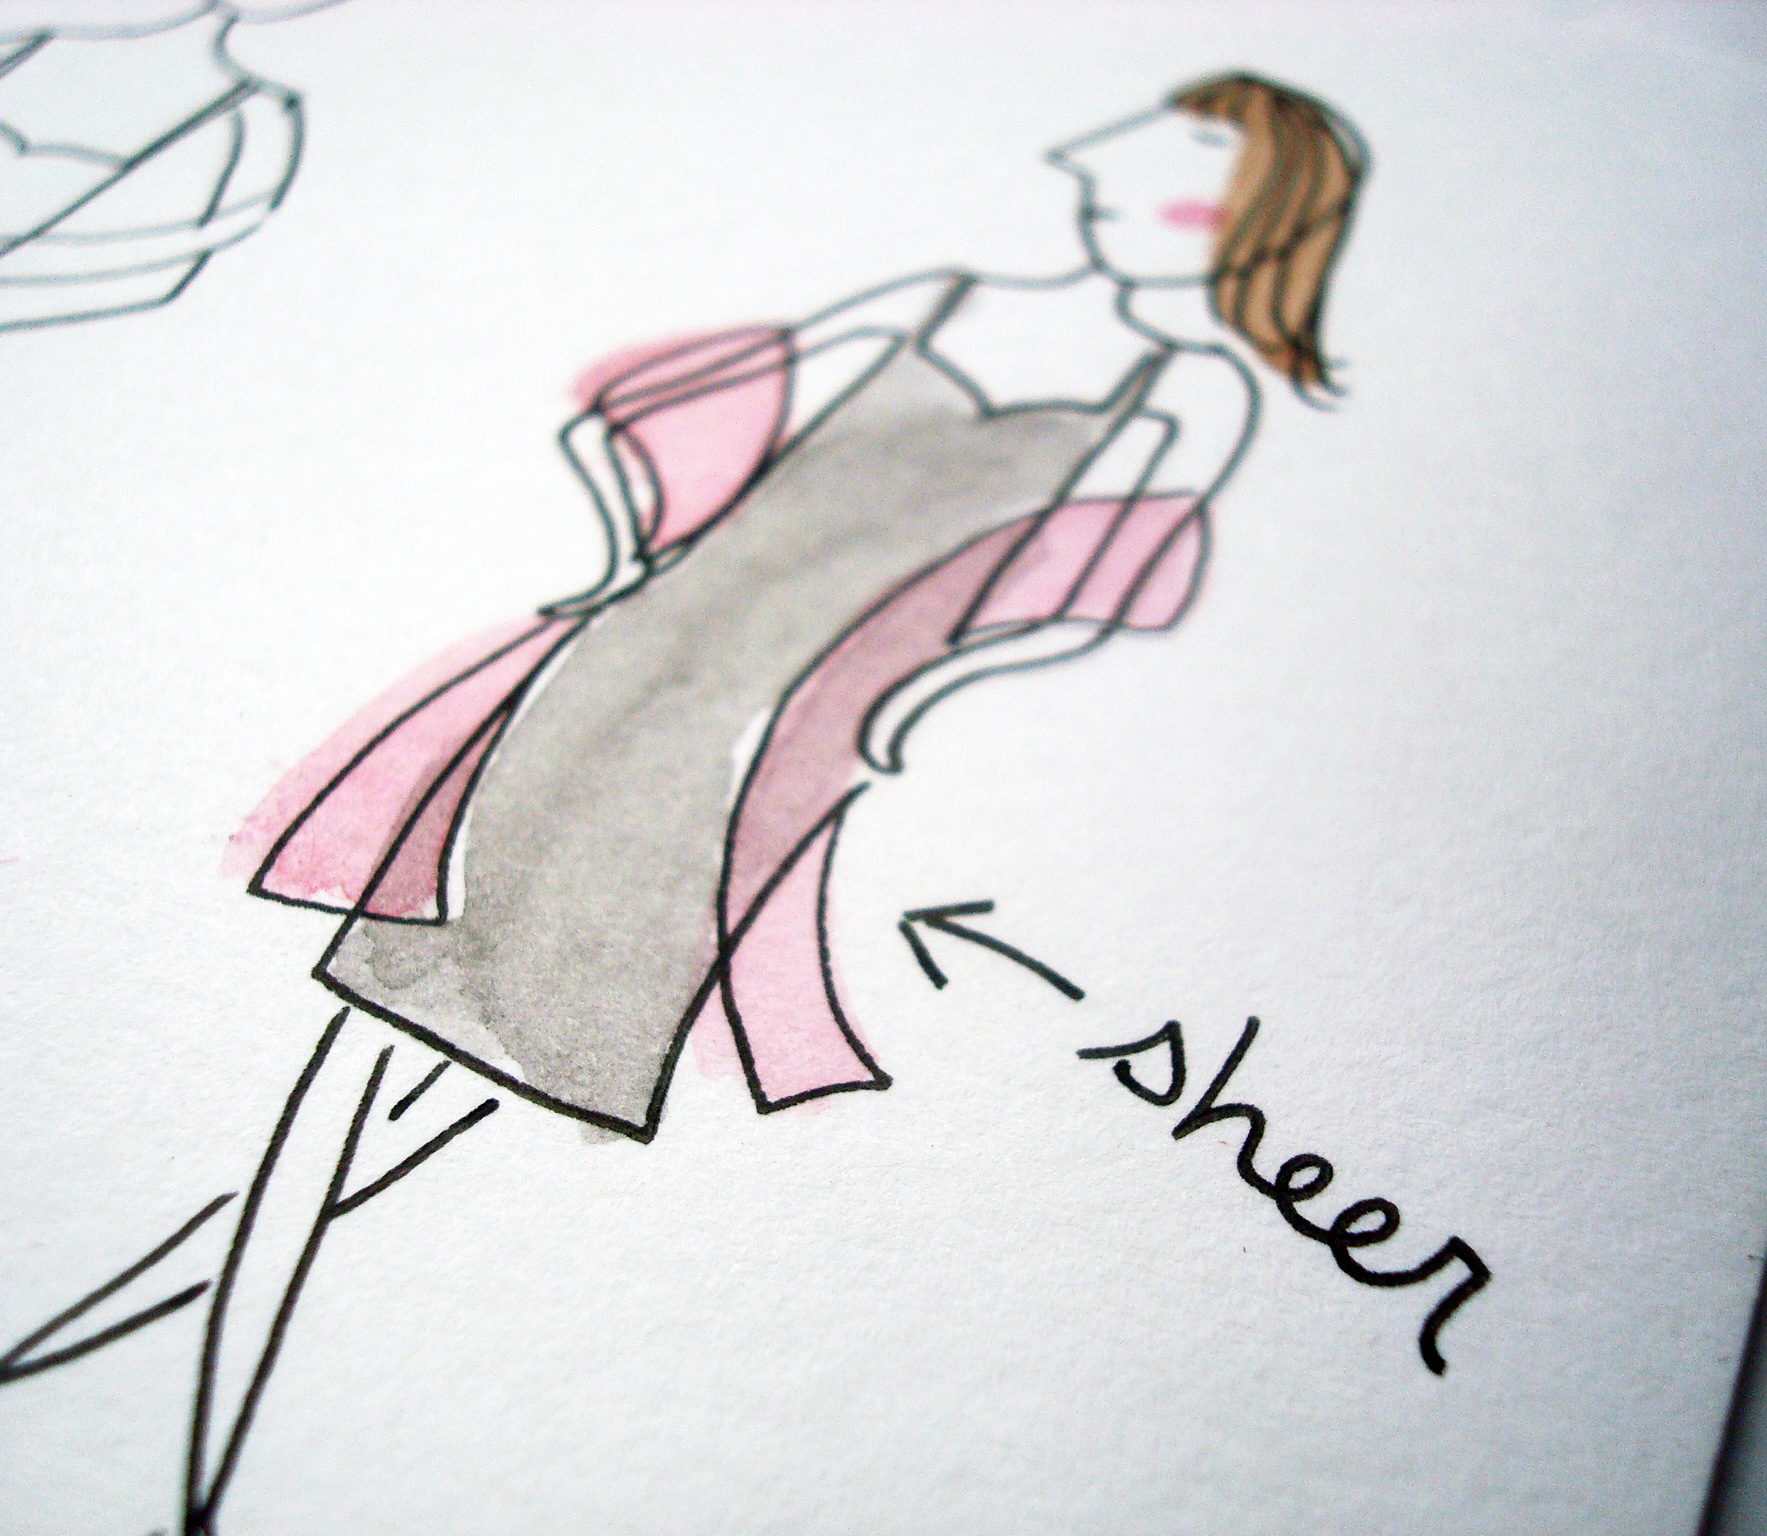 How to illustrate sheer clothing